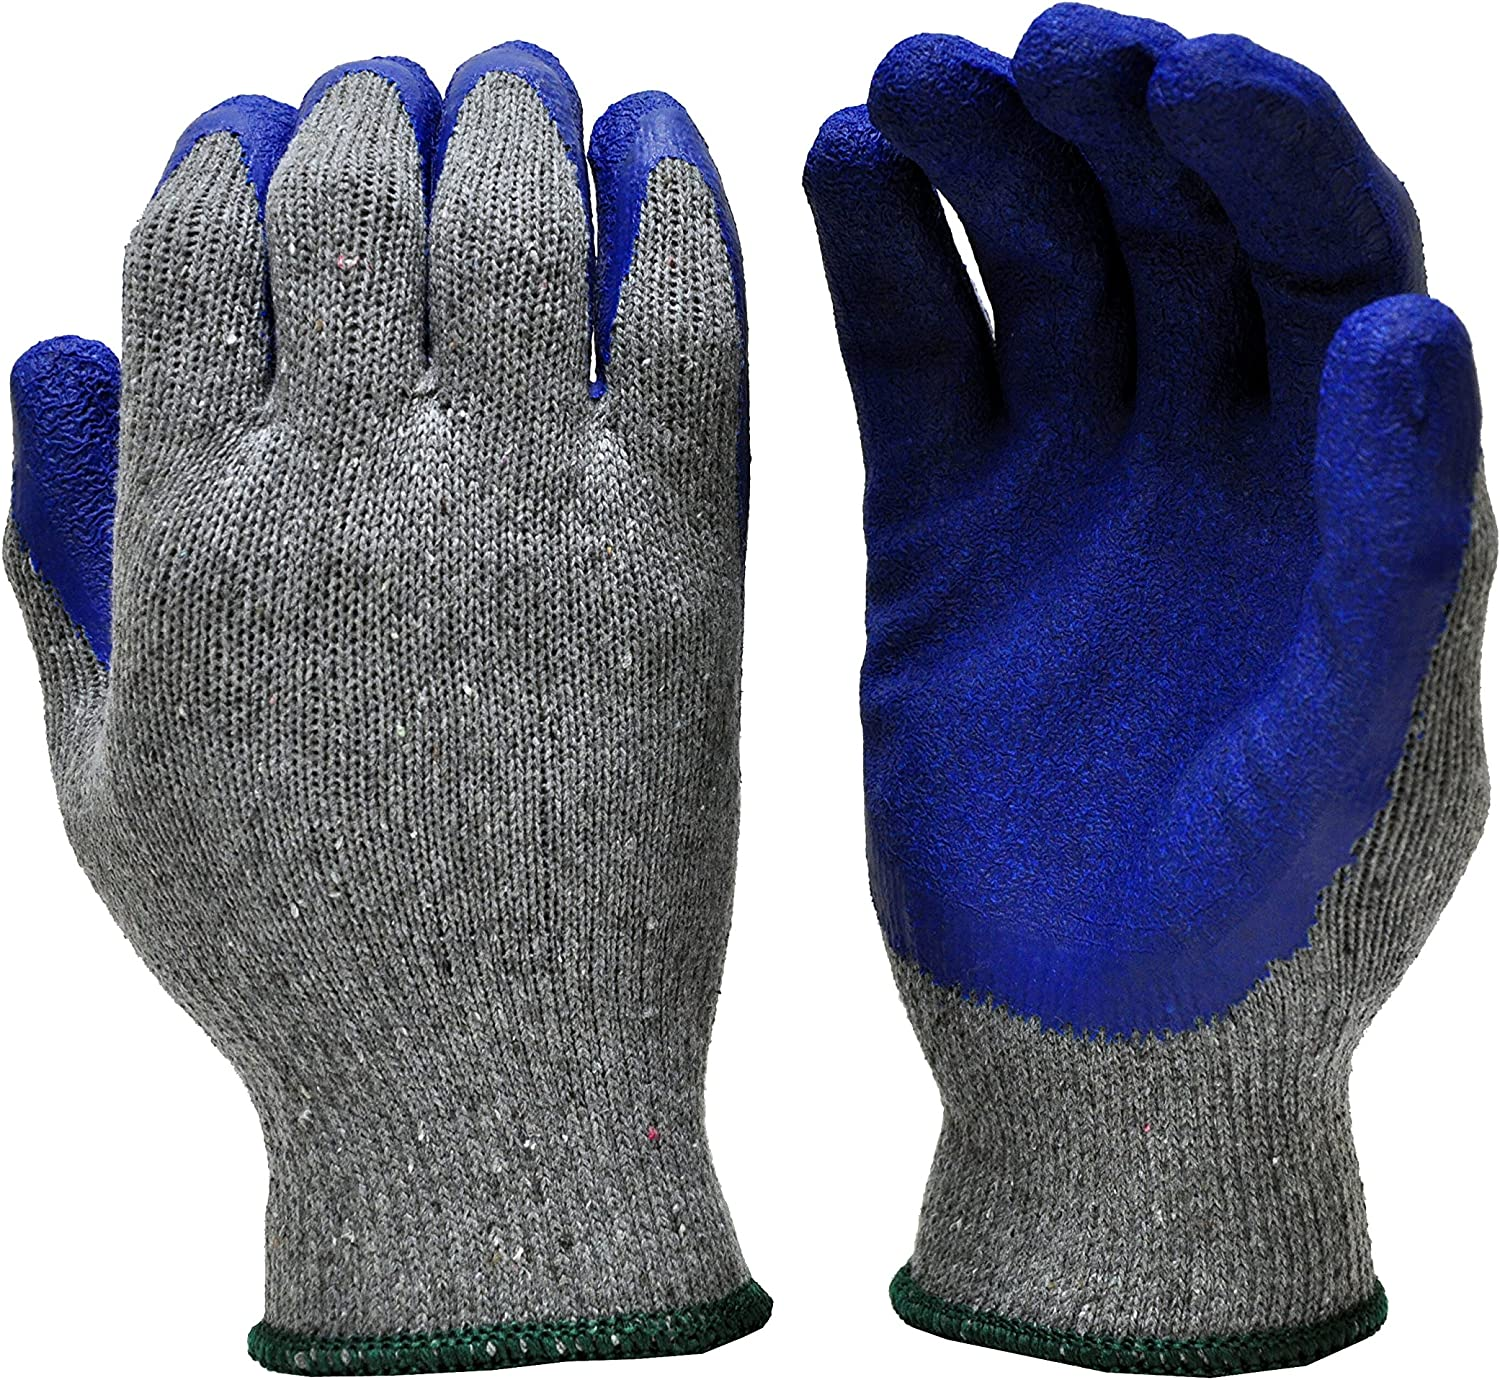 G & F 1511M-DZ Rubber Latex Coated Work Gloves for Construction, Blue, Crinkle Pattern, Men's Medium (Sold by dozen, 12 Pairs)